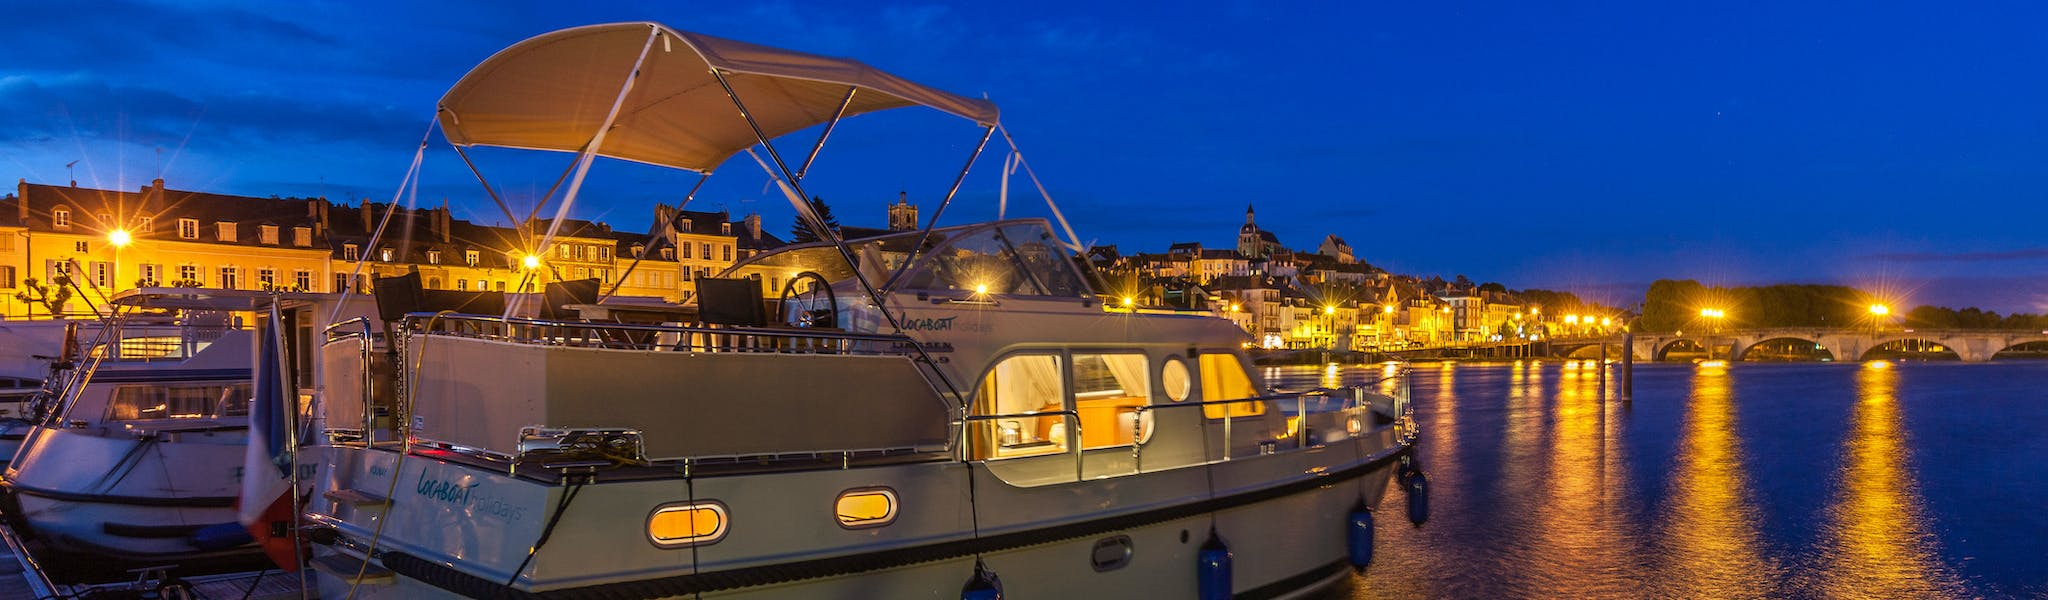 Locaboat Linssen by night